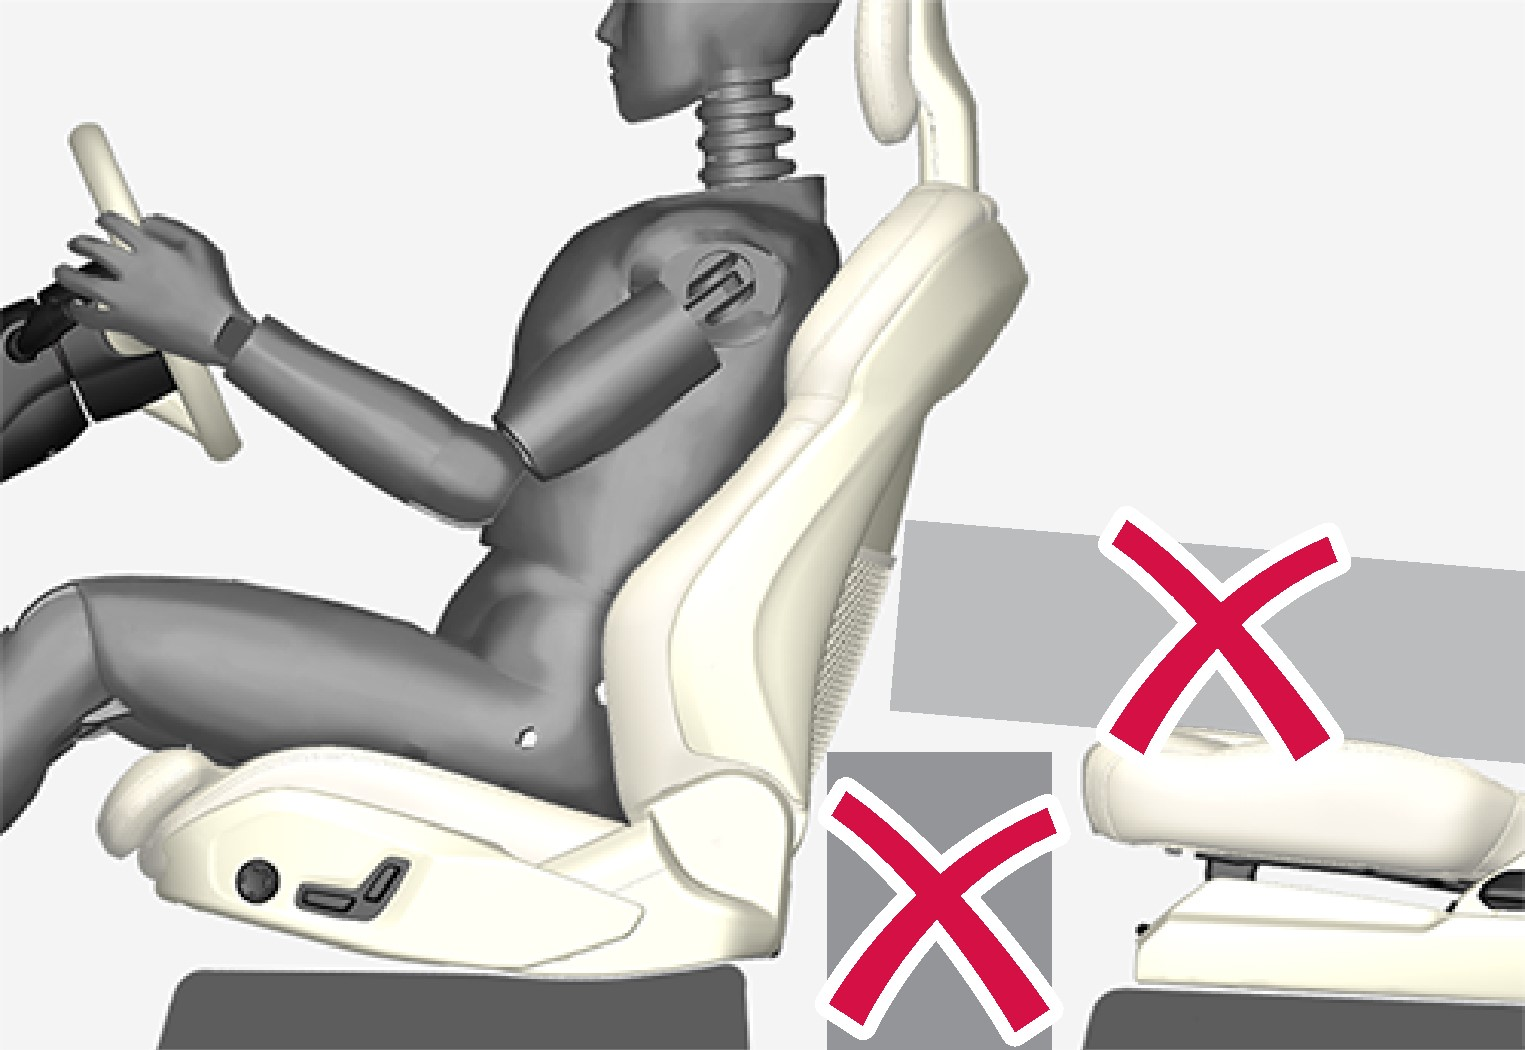 Do not leave any objects on the floor behind or under the front seats or in the seat row behind the driver